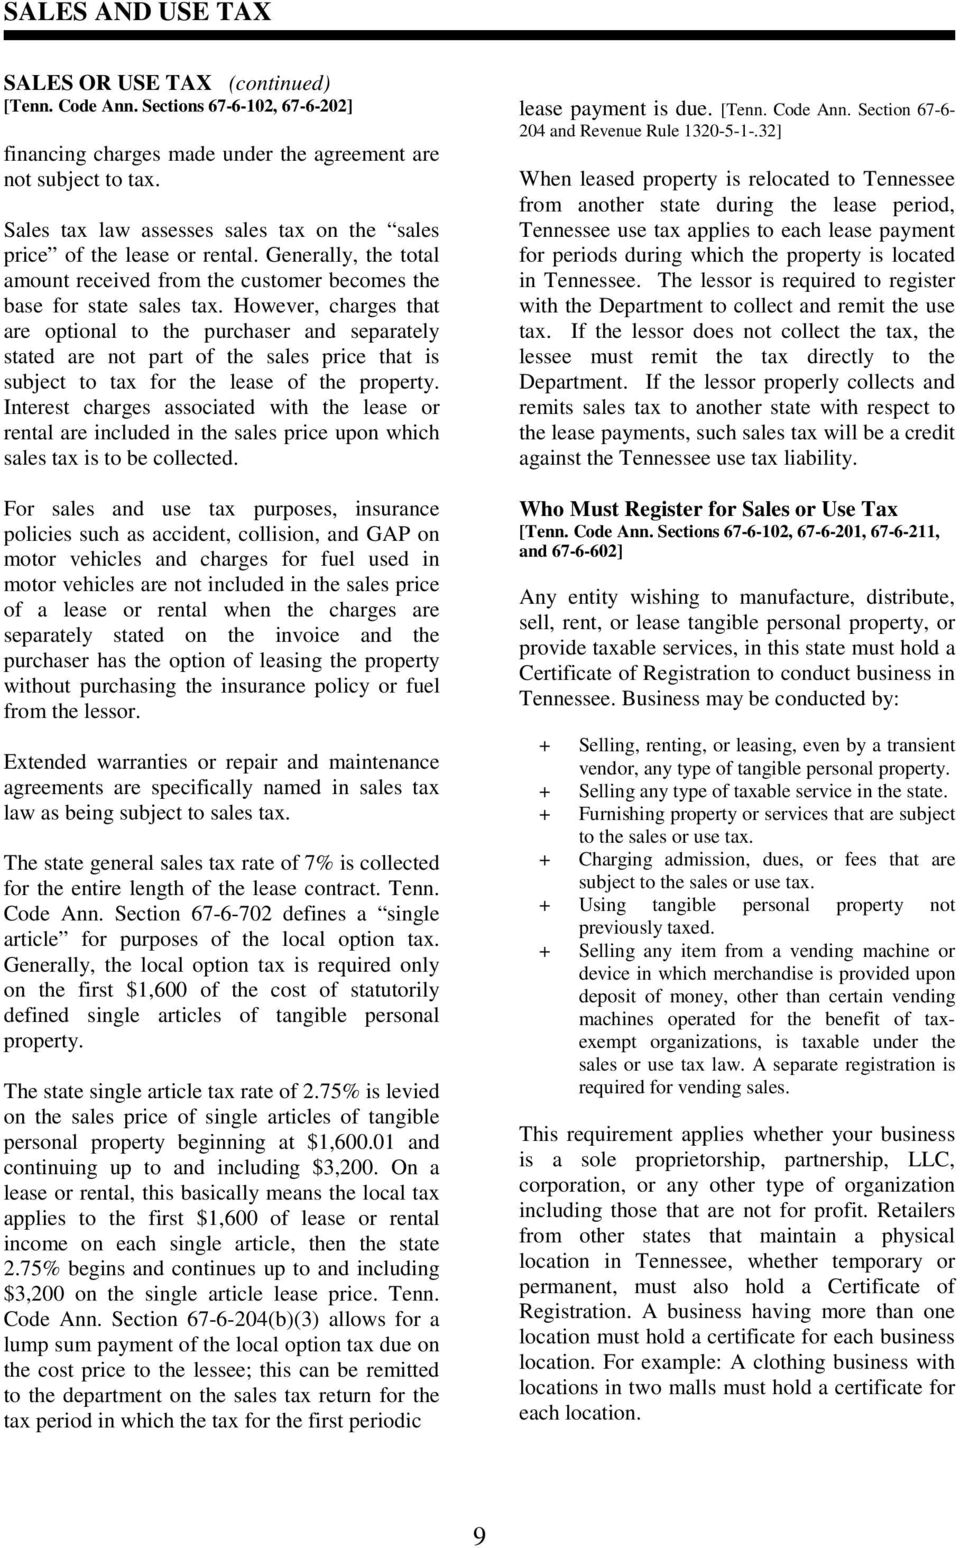 Tennessee Sales and Use Tax Guide - PDF